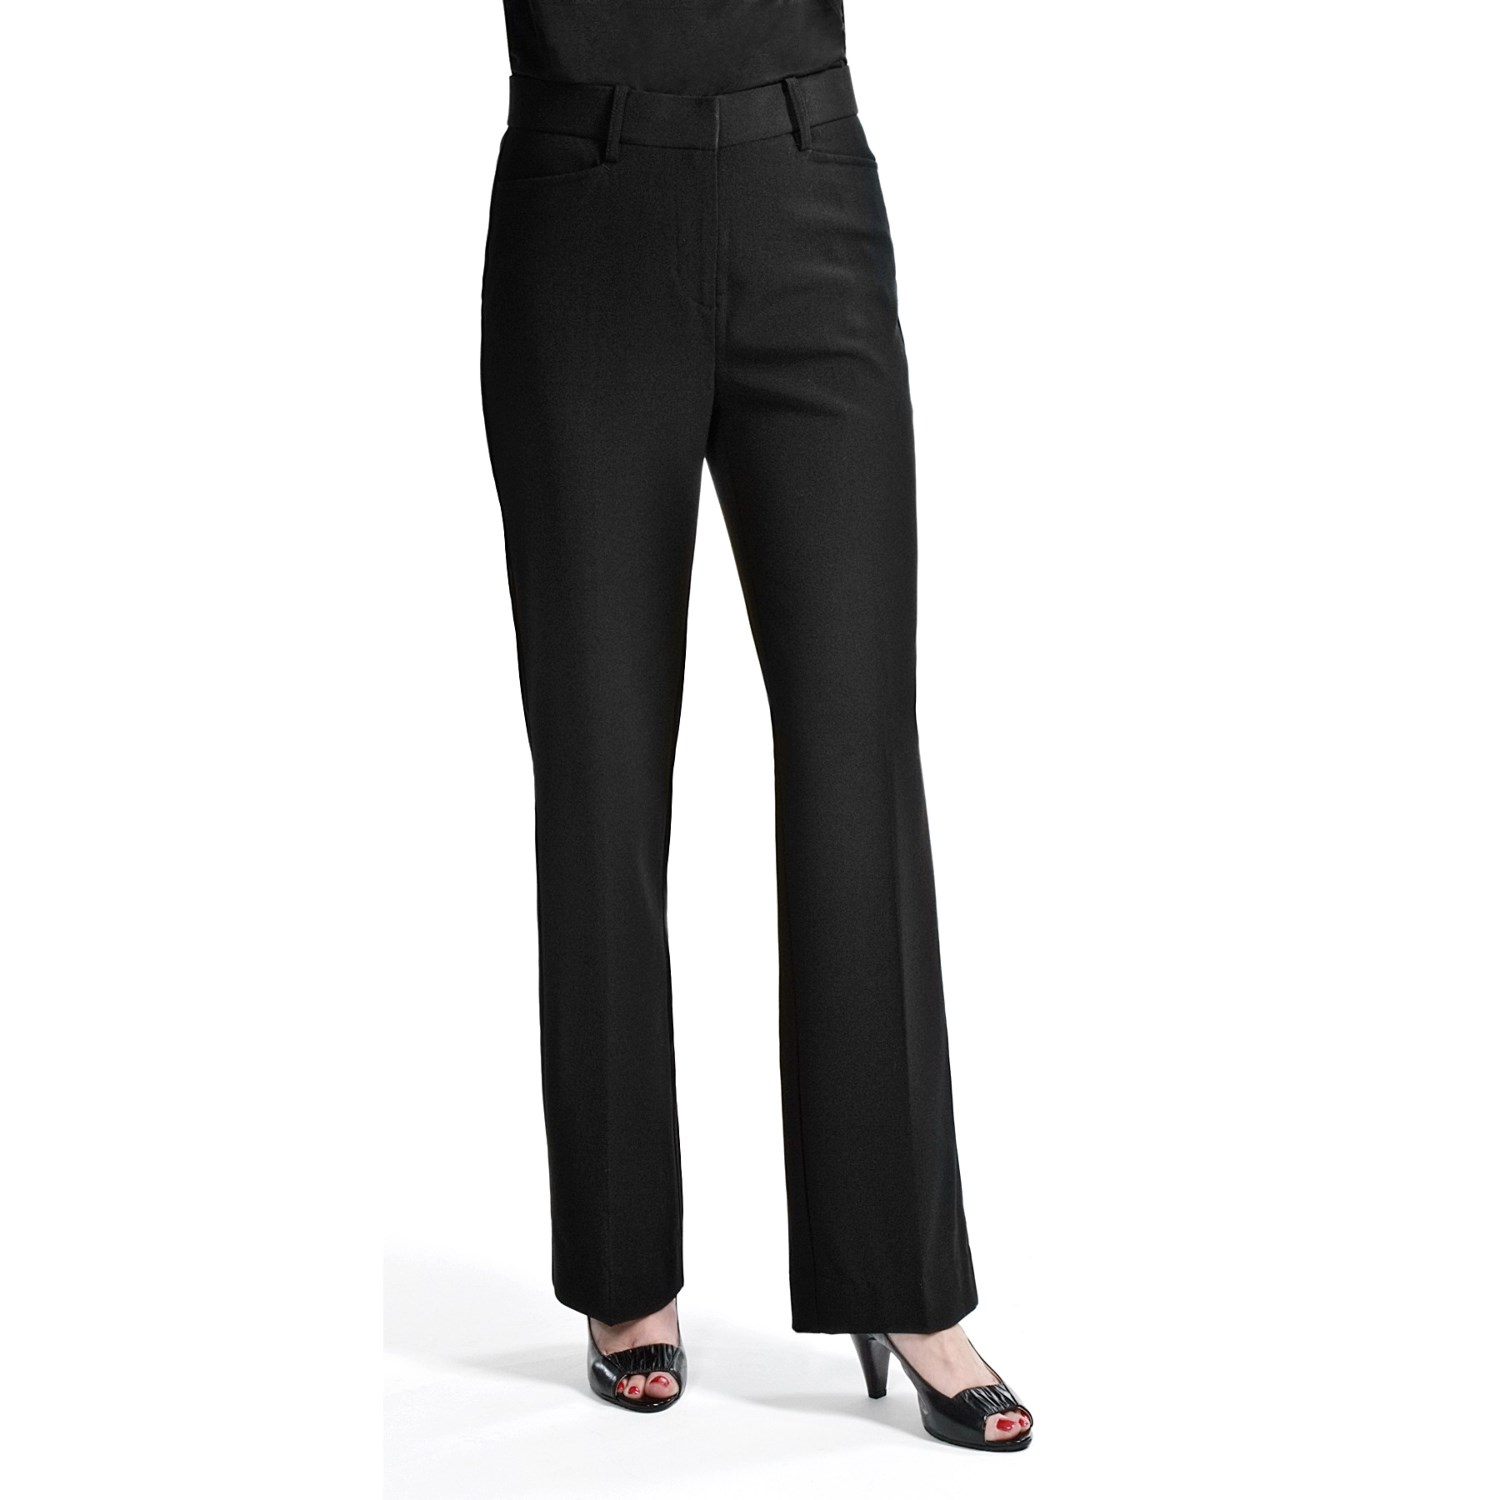 Casual Studio Dress Pants - Easy Care (For Women) - Save 70%